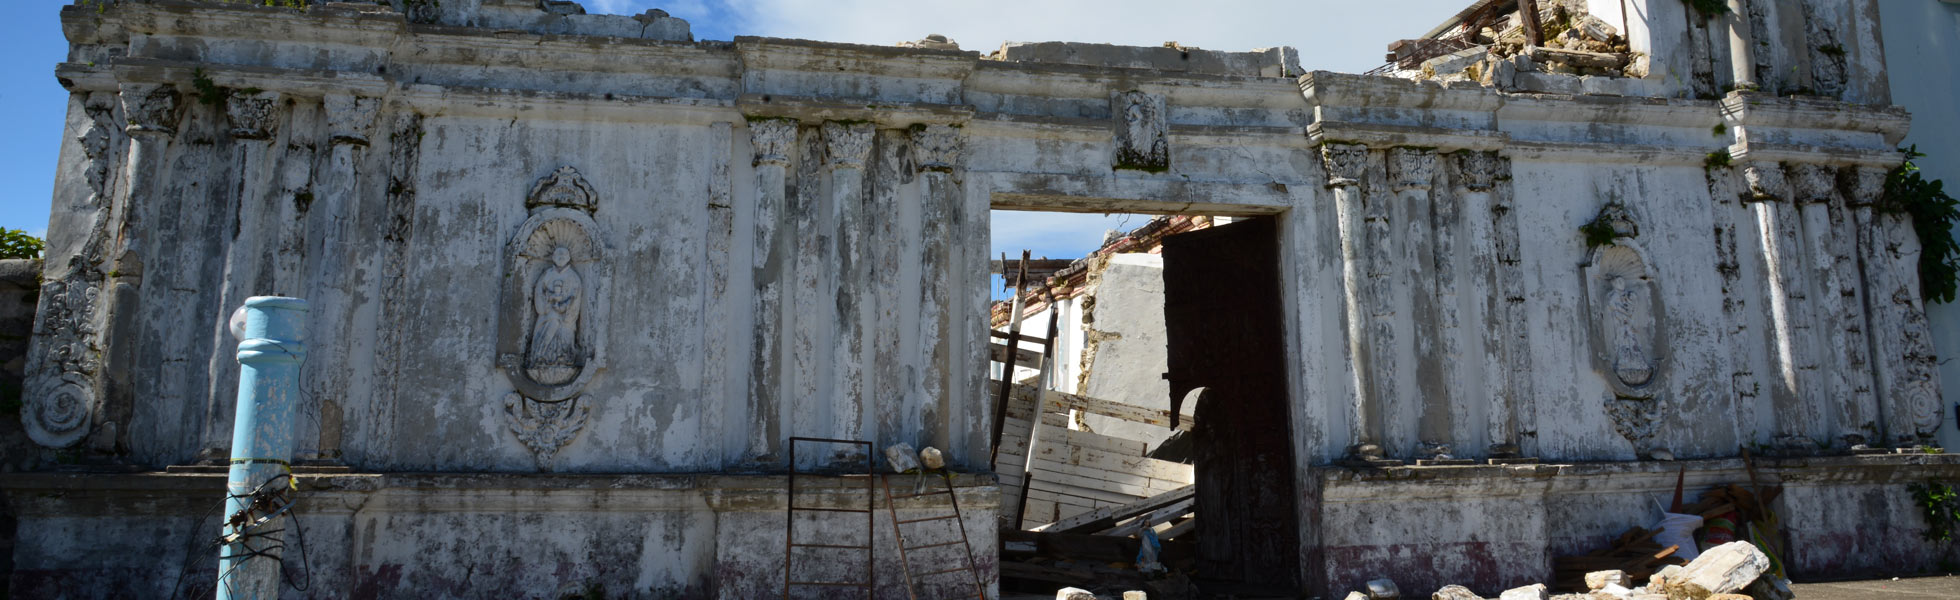 Aid to the Church in Need supports affected dioceses – many churches rebuilt